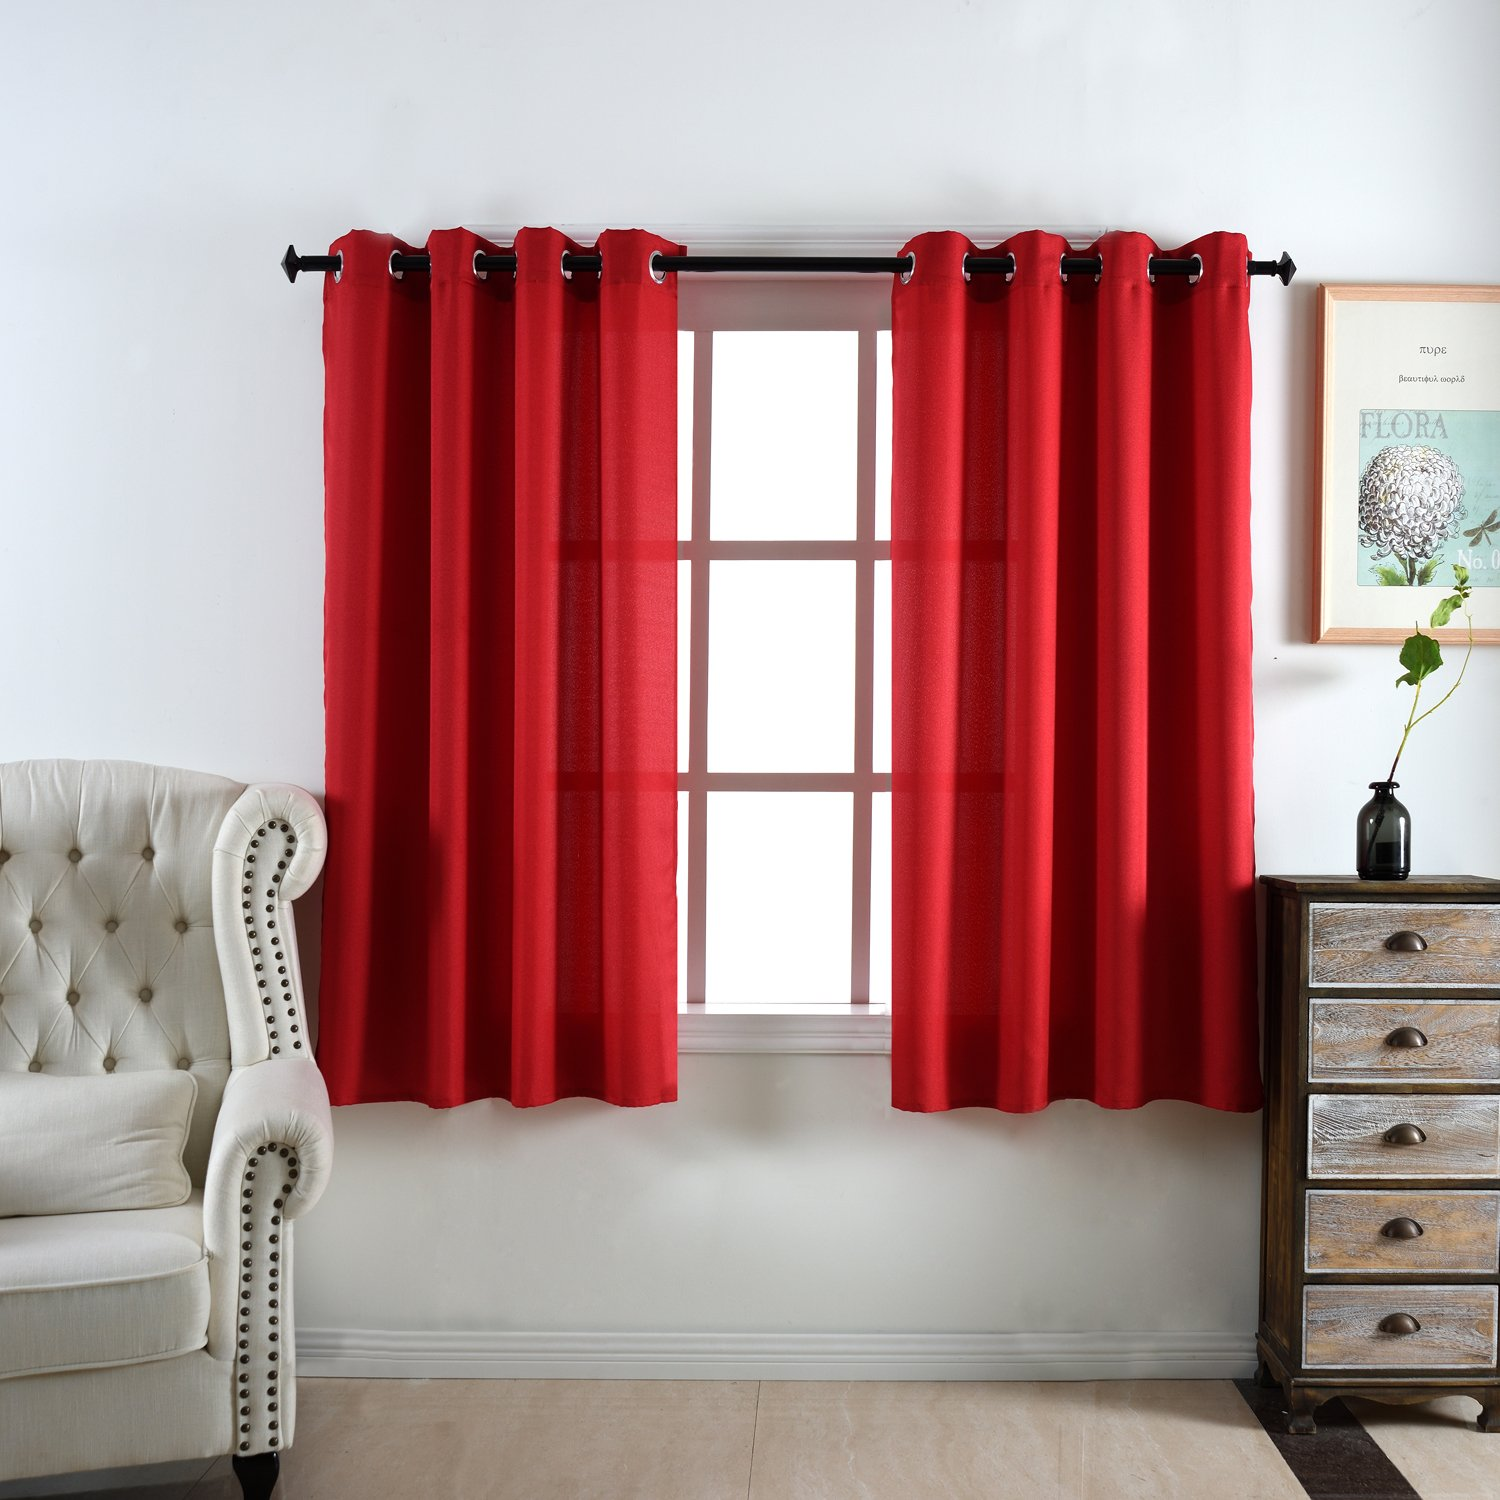 DWCN Red Curtains Faux Linen Country Modern Style Draperies 8 Grommets Window Curtain Panel